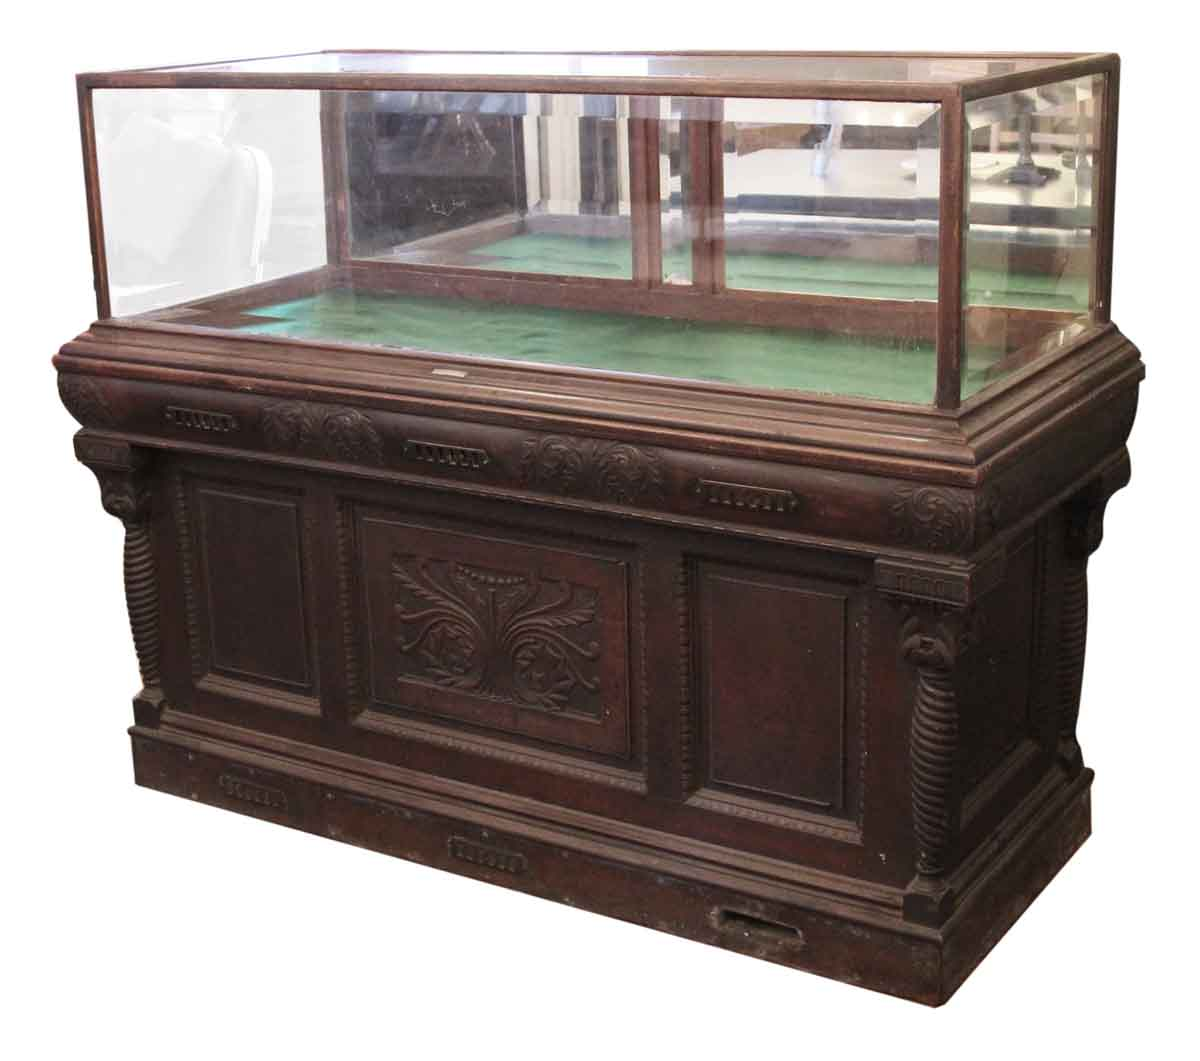 Antique Cigar Humidor & Showcase by Whitcomb Cabinet ... - Antique Cigar Humidor & Showcase By Whitcomb Cabinet Co. Olde Good